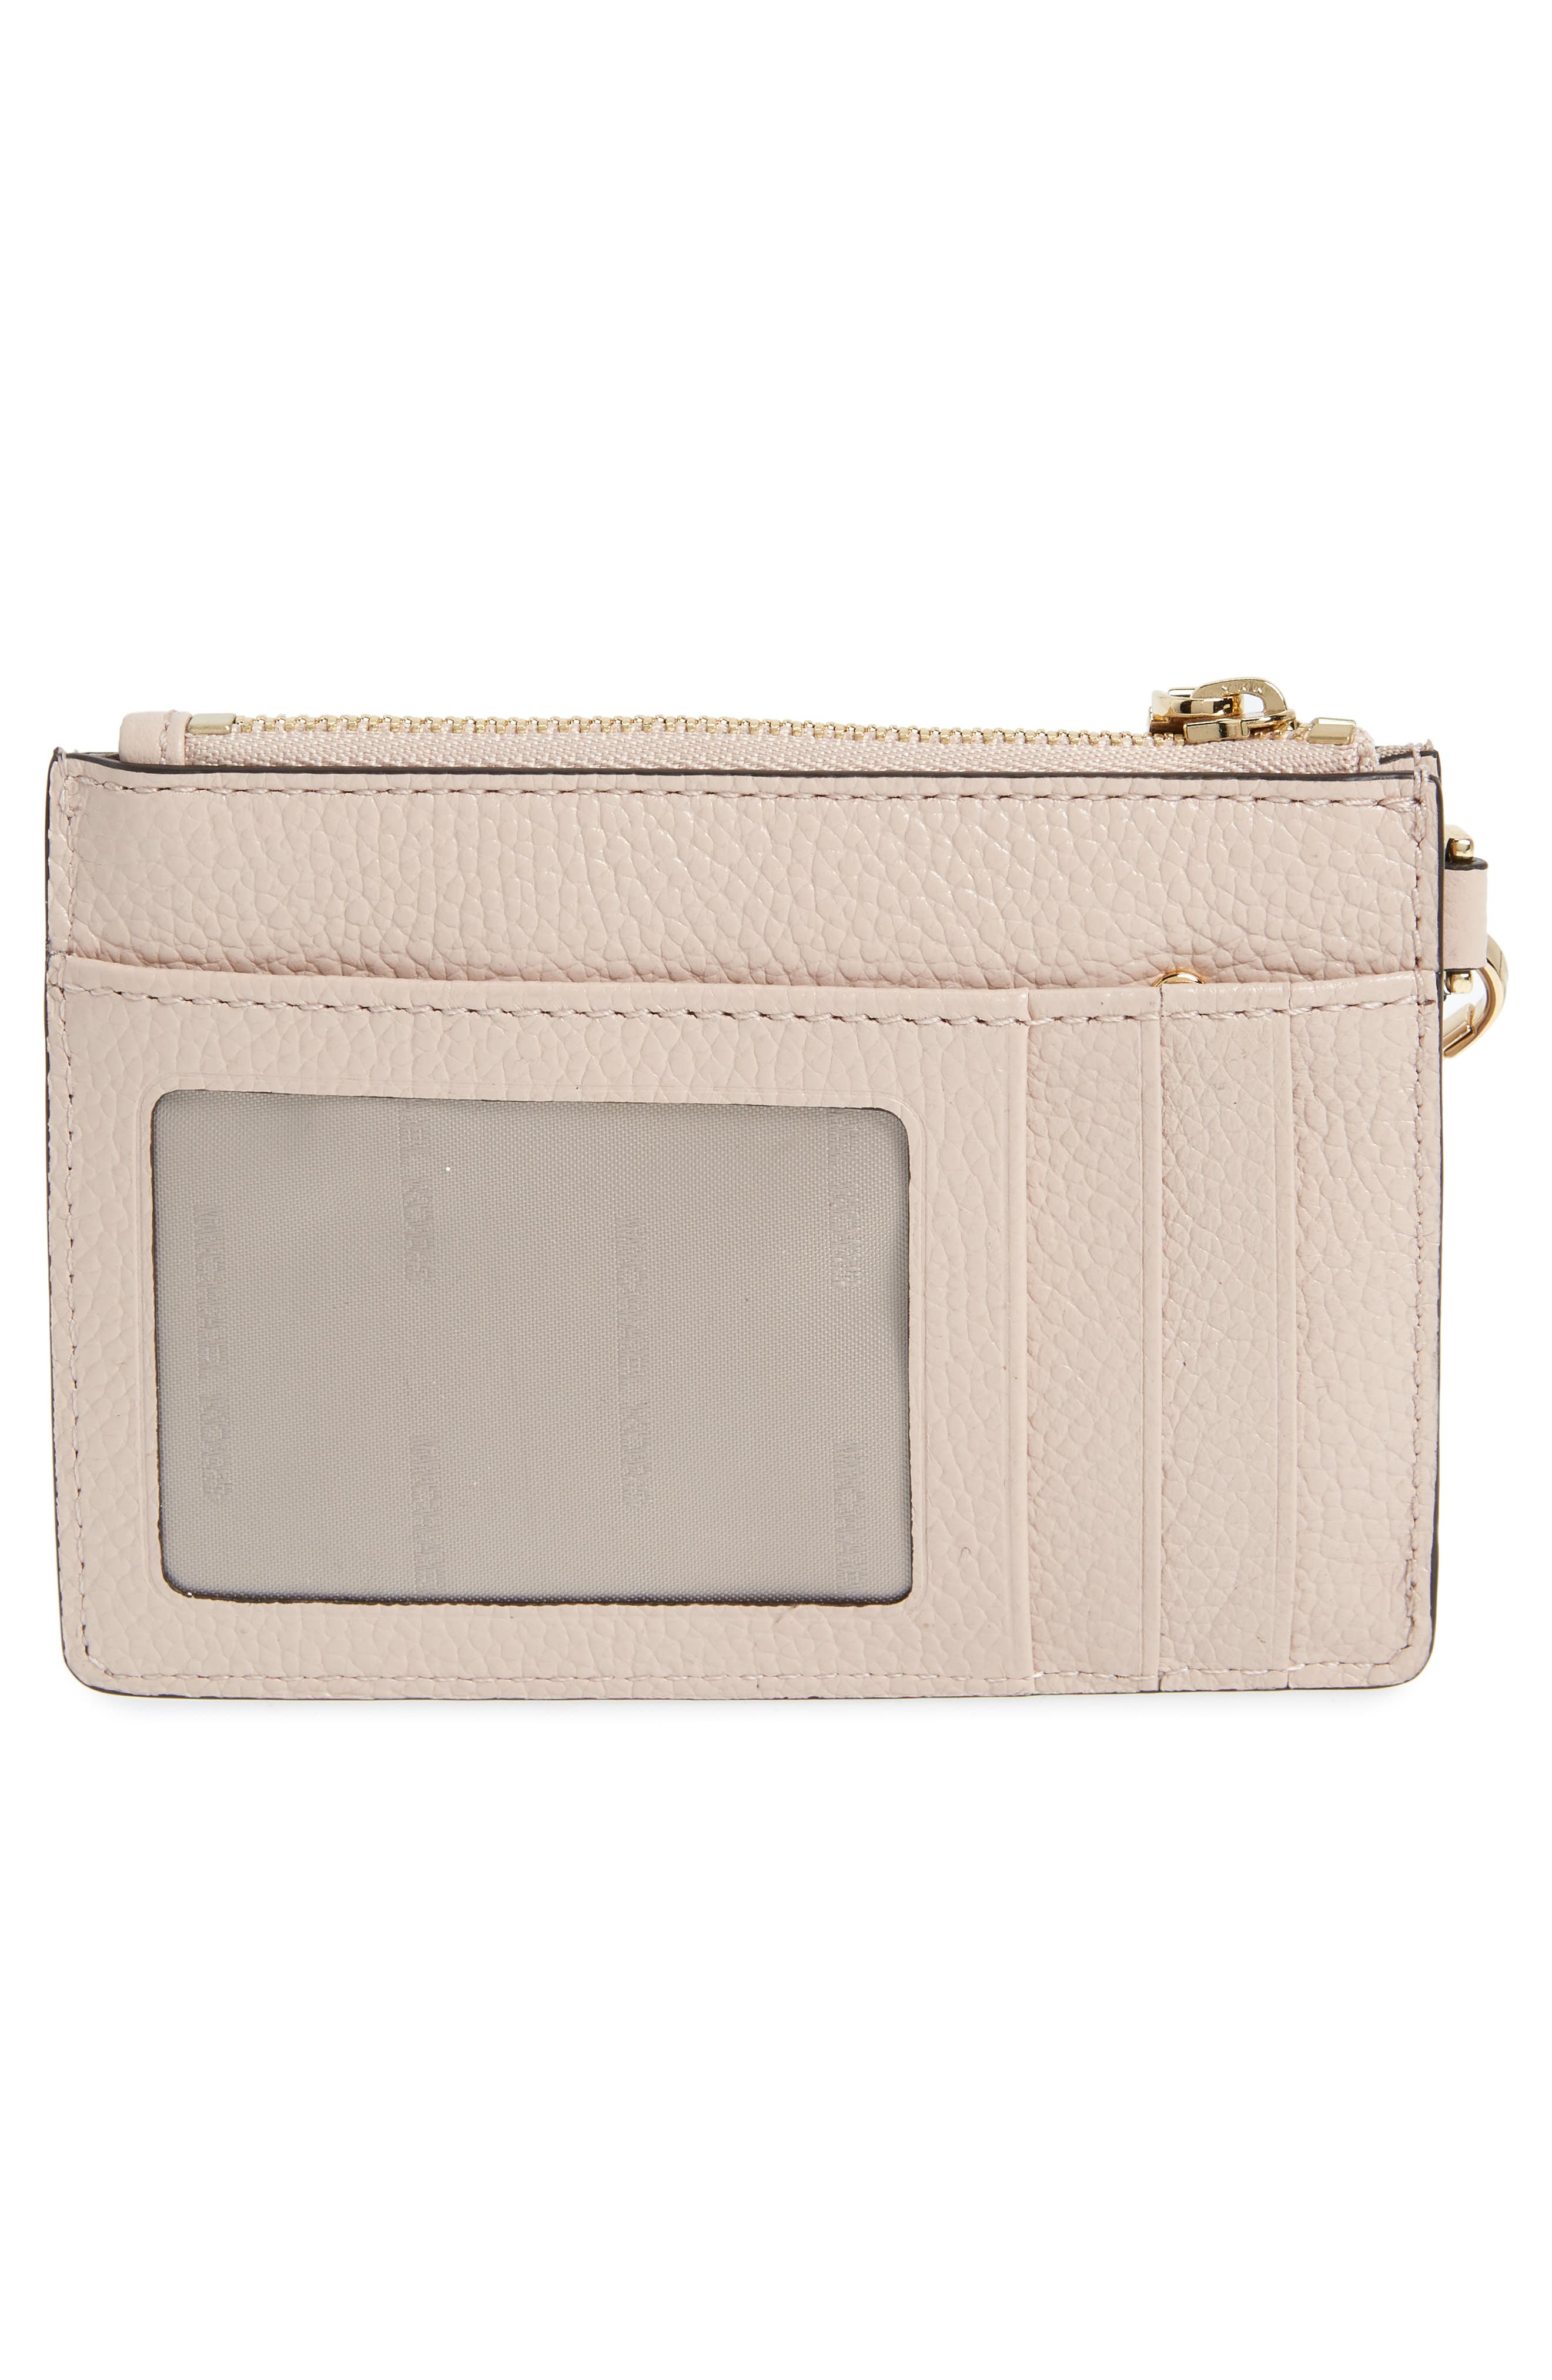 Small Mercer Leather RFID Coin Purse,                             Alternate thumbnail 4, color,                             Soft Pink